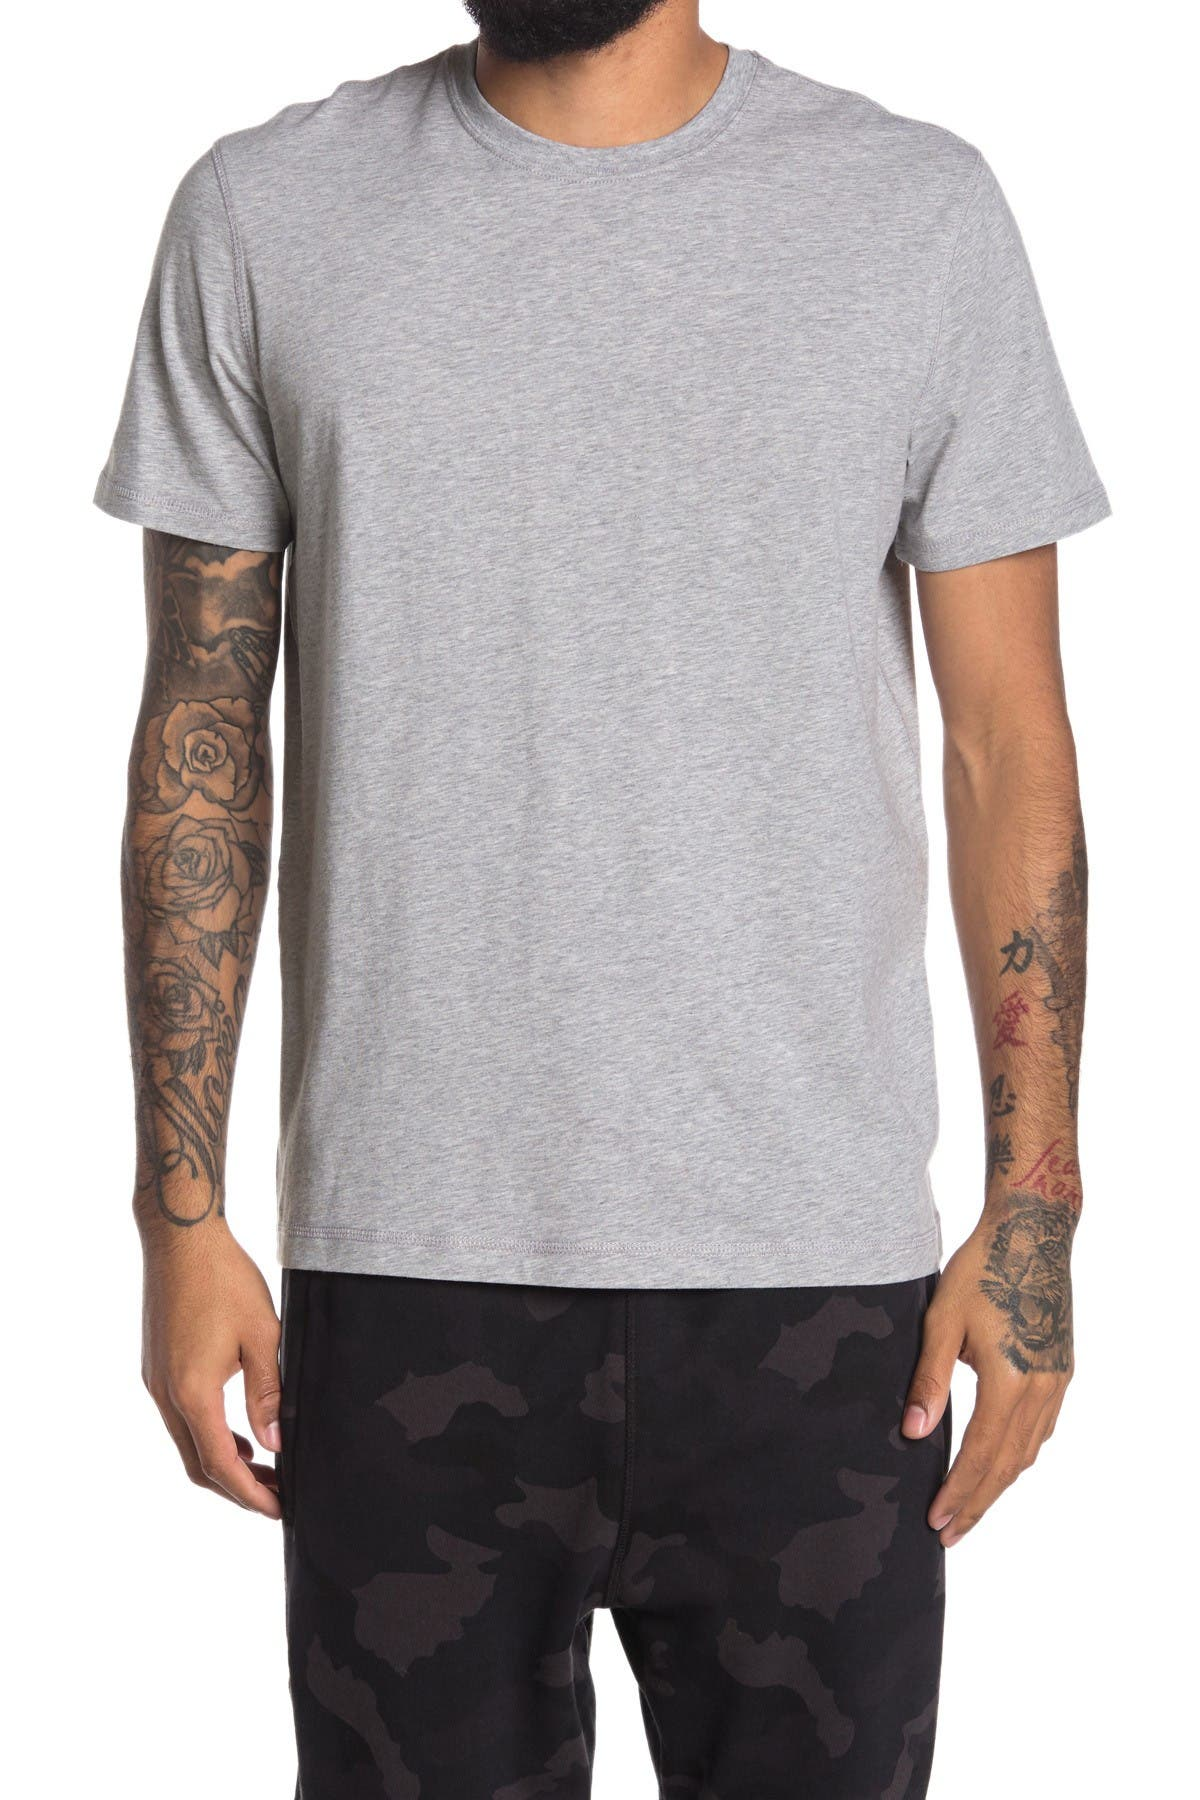 Image of 90 Degree By Reflex Crew Neck T-Shirt